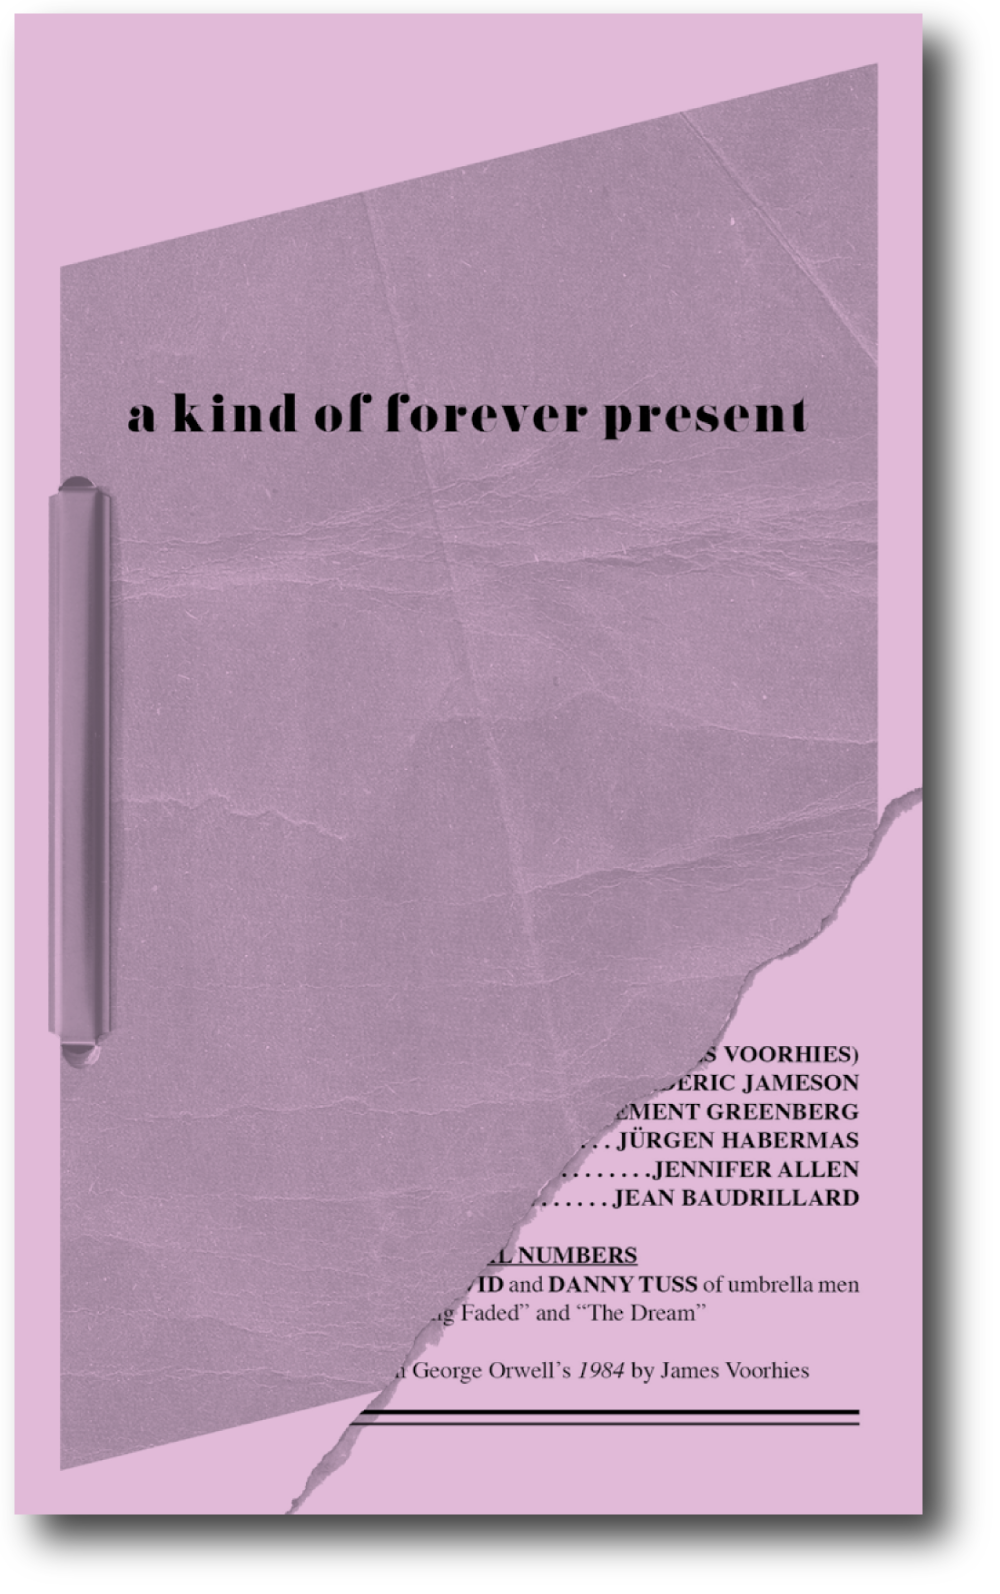 a kind of forever present , published by Bureau for Open Culture, 2011; designed by Nate Padavick; 32 pages; 8.25 x 5 inches